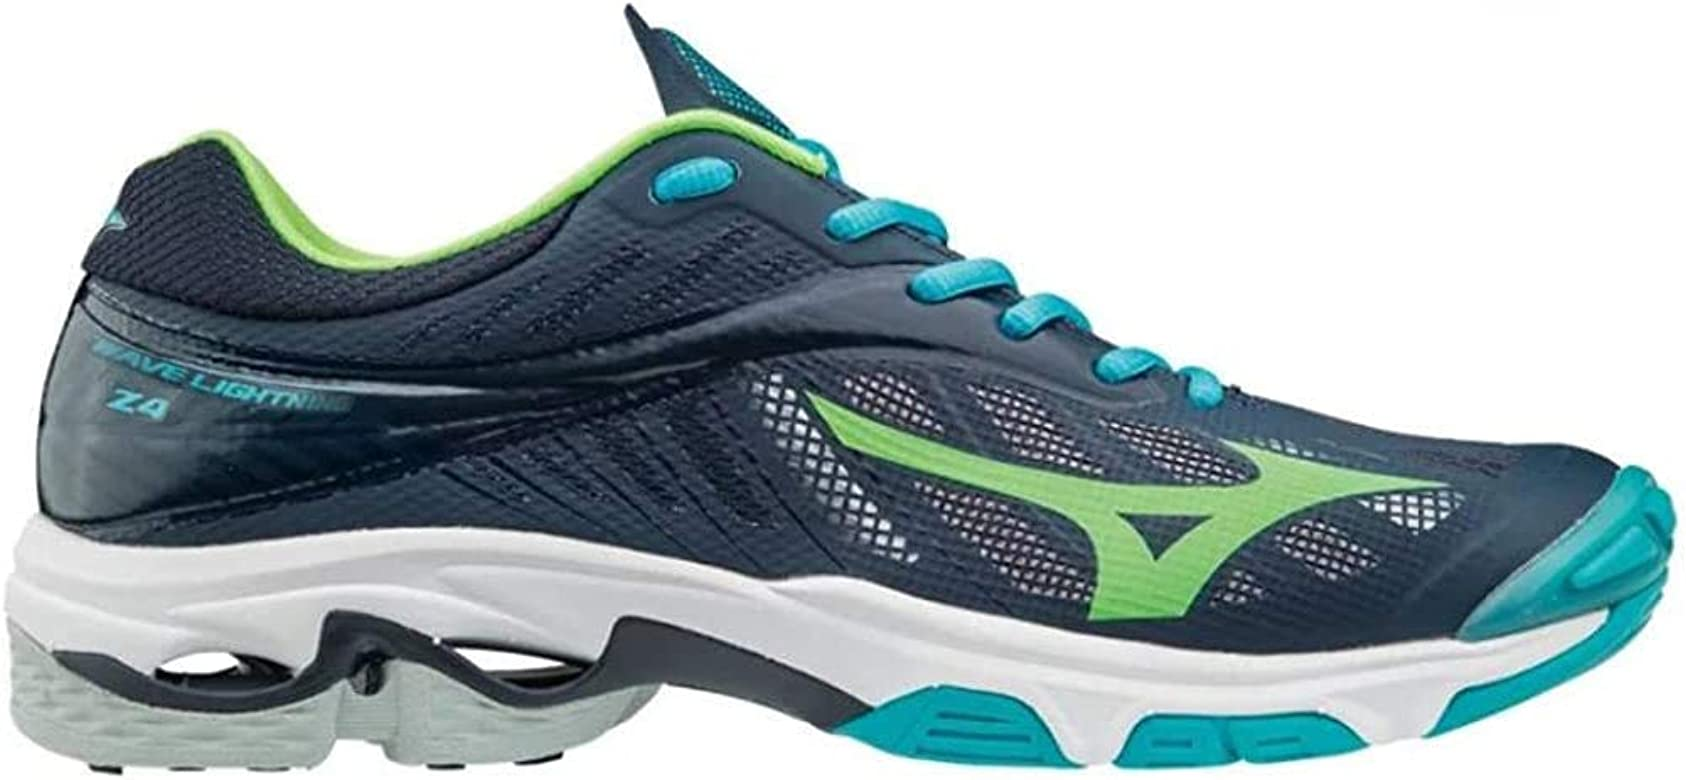 Mizuno Wave Lightning Z4 blauw indoor schoenen heren: Amazon.es: Ropa y accesorios